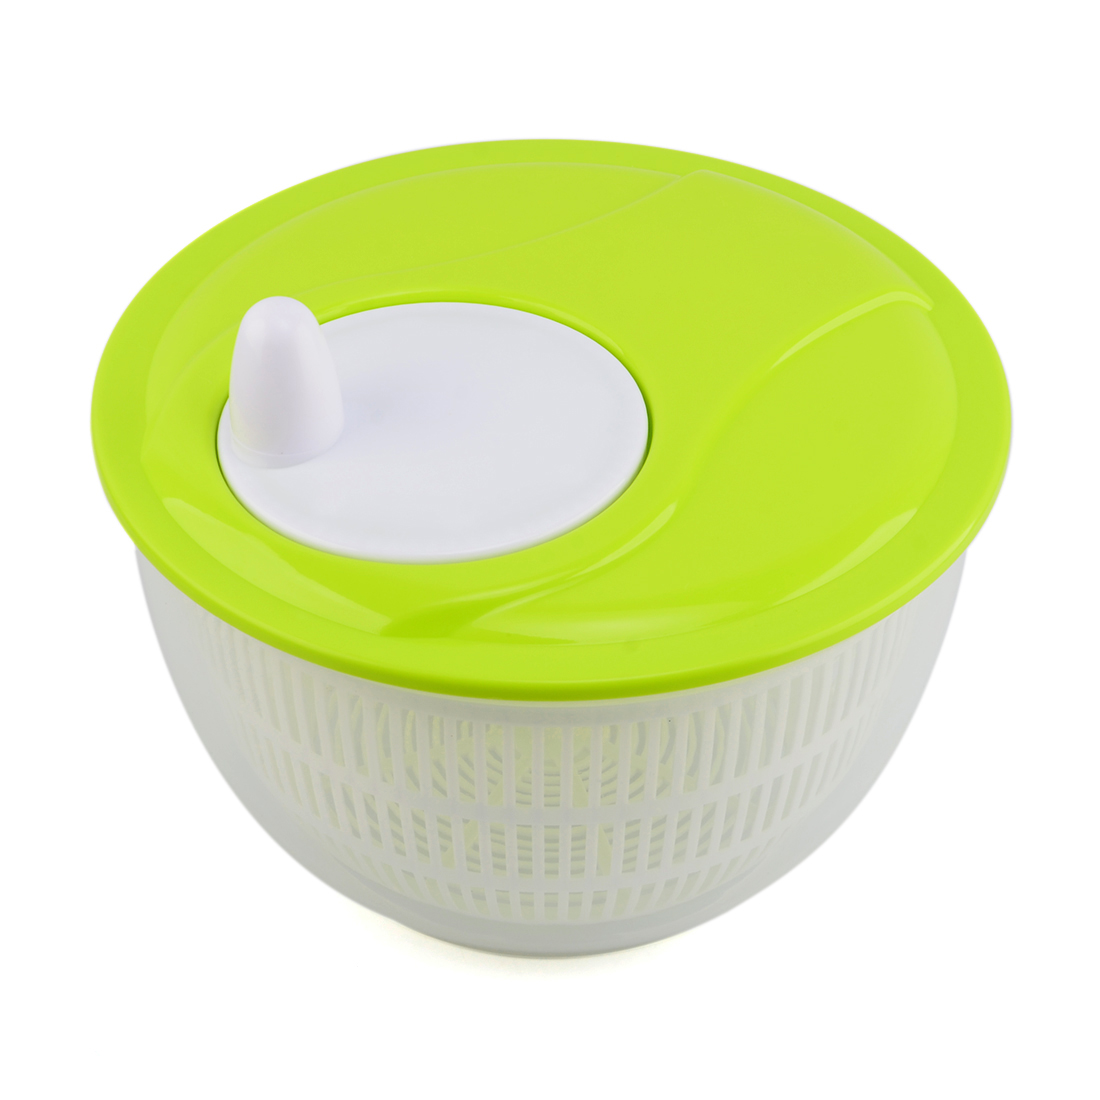 Easy Hand Spin Salad Spinner Vegetable and Fruit Dryer Multifunction Kitchen Tool Lid Color Random by